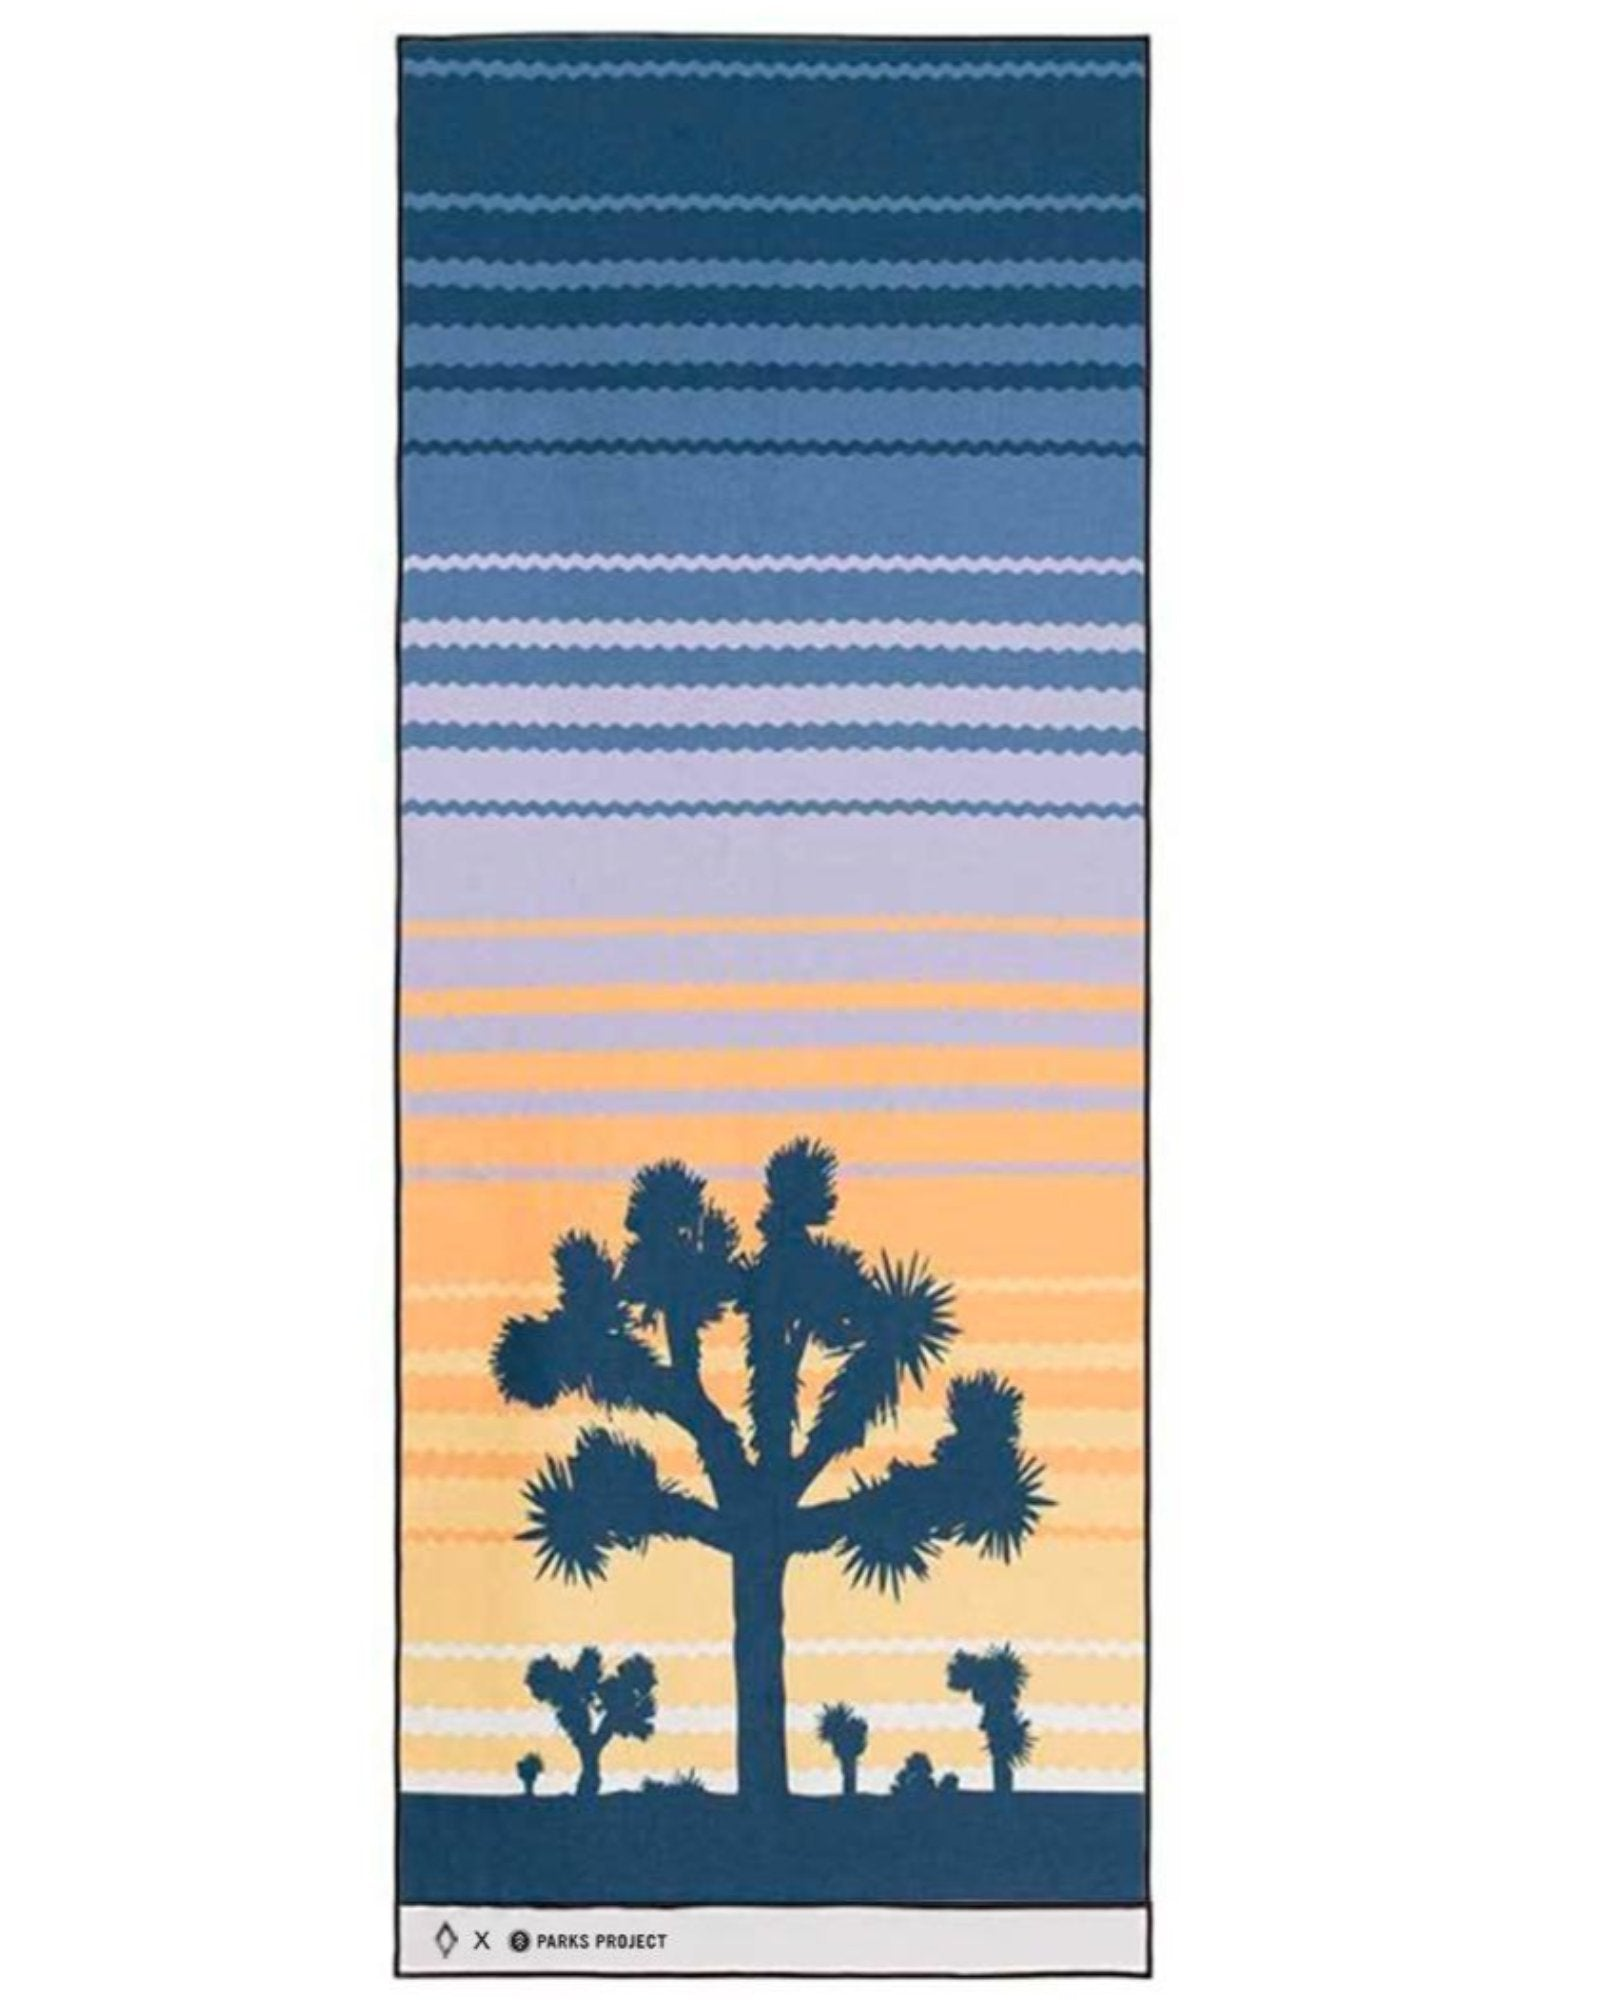 Joshua Tree Nomadix Multi-Use Towel